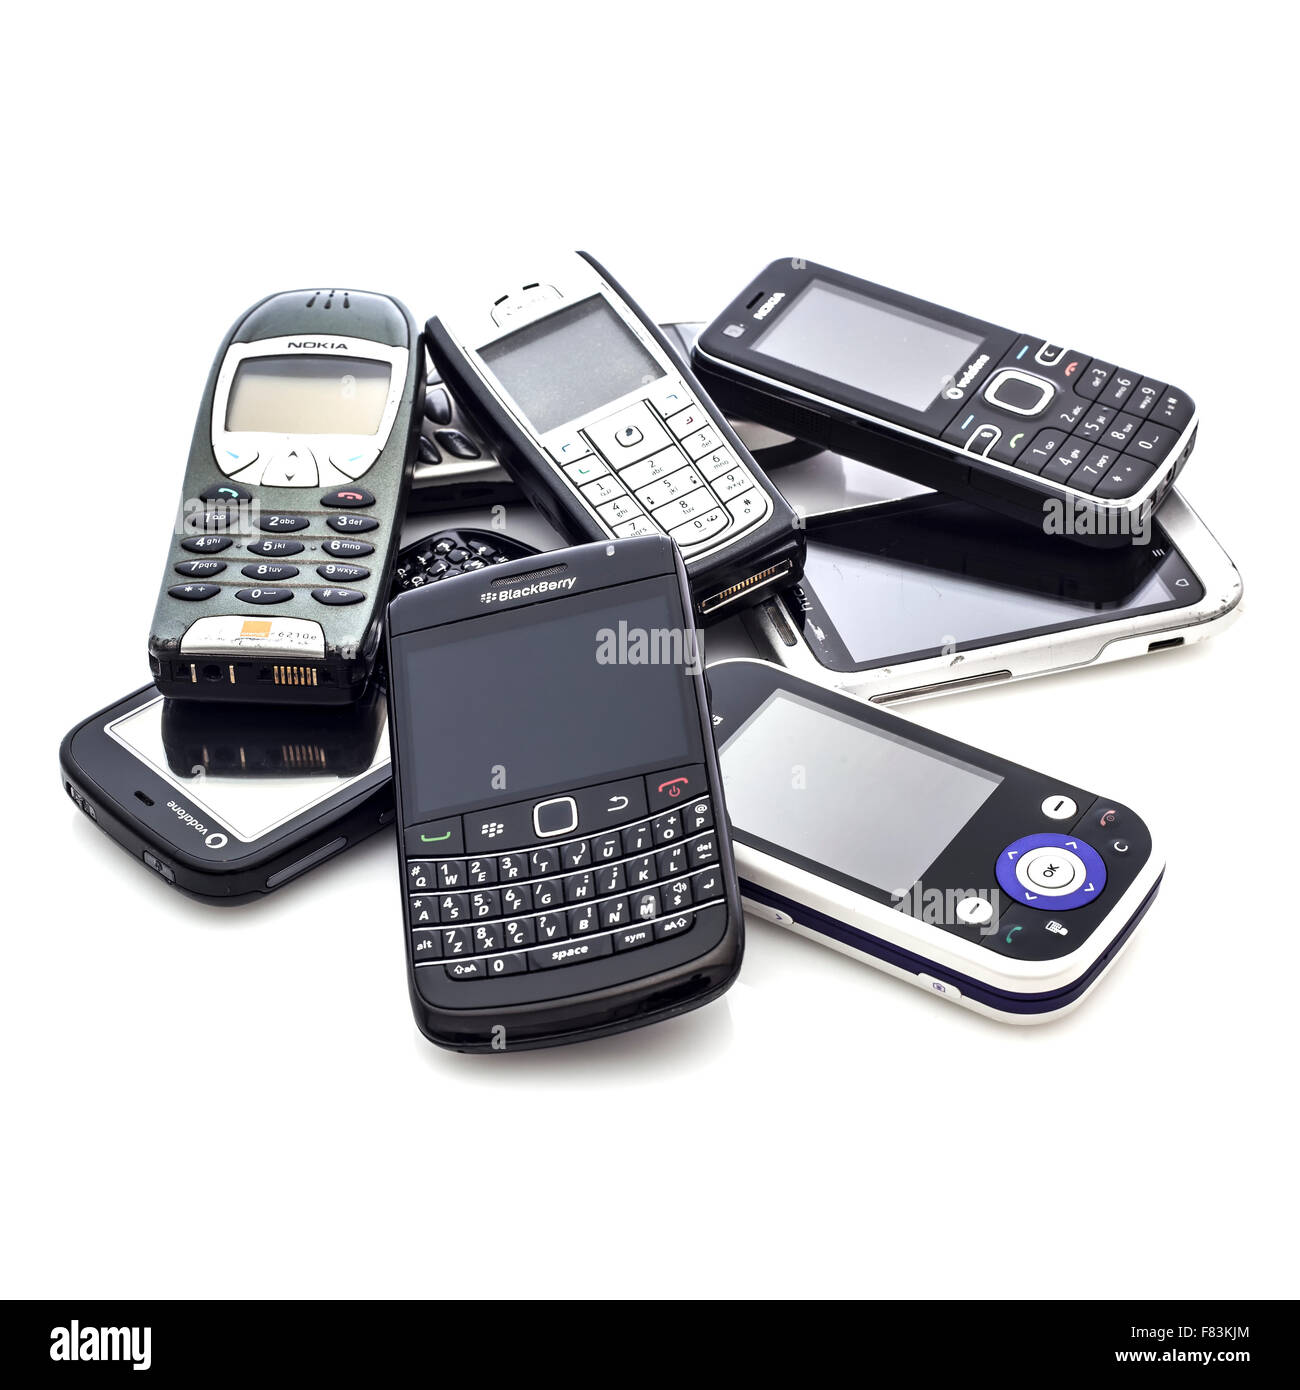 A Collection Of Old Mobile Cell Phones on A White Background - Stock Image